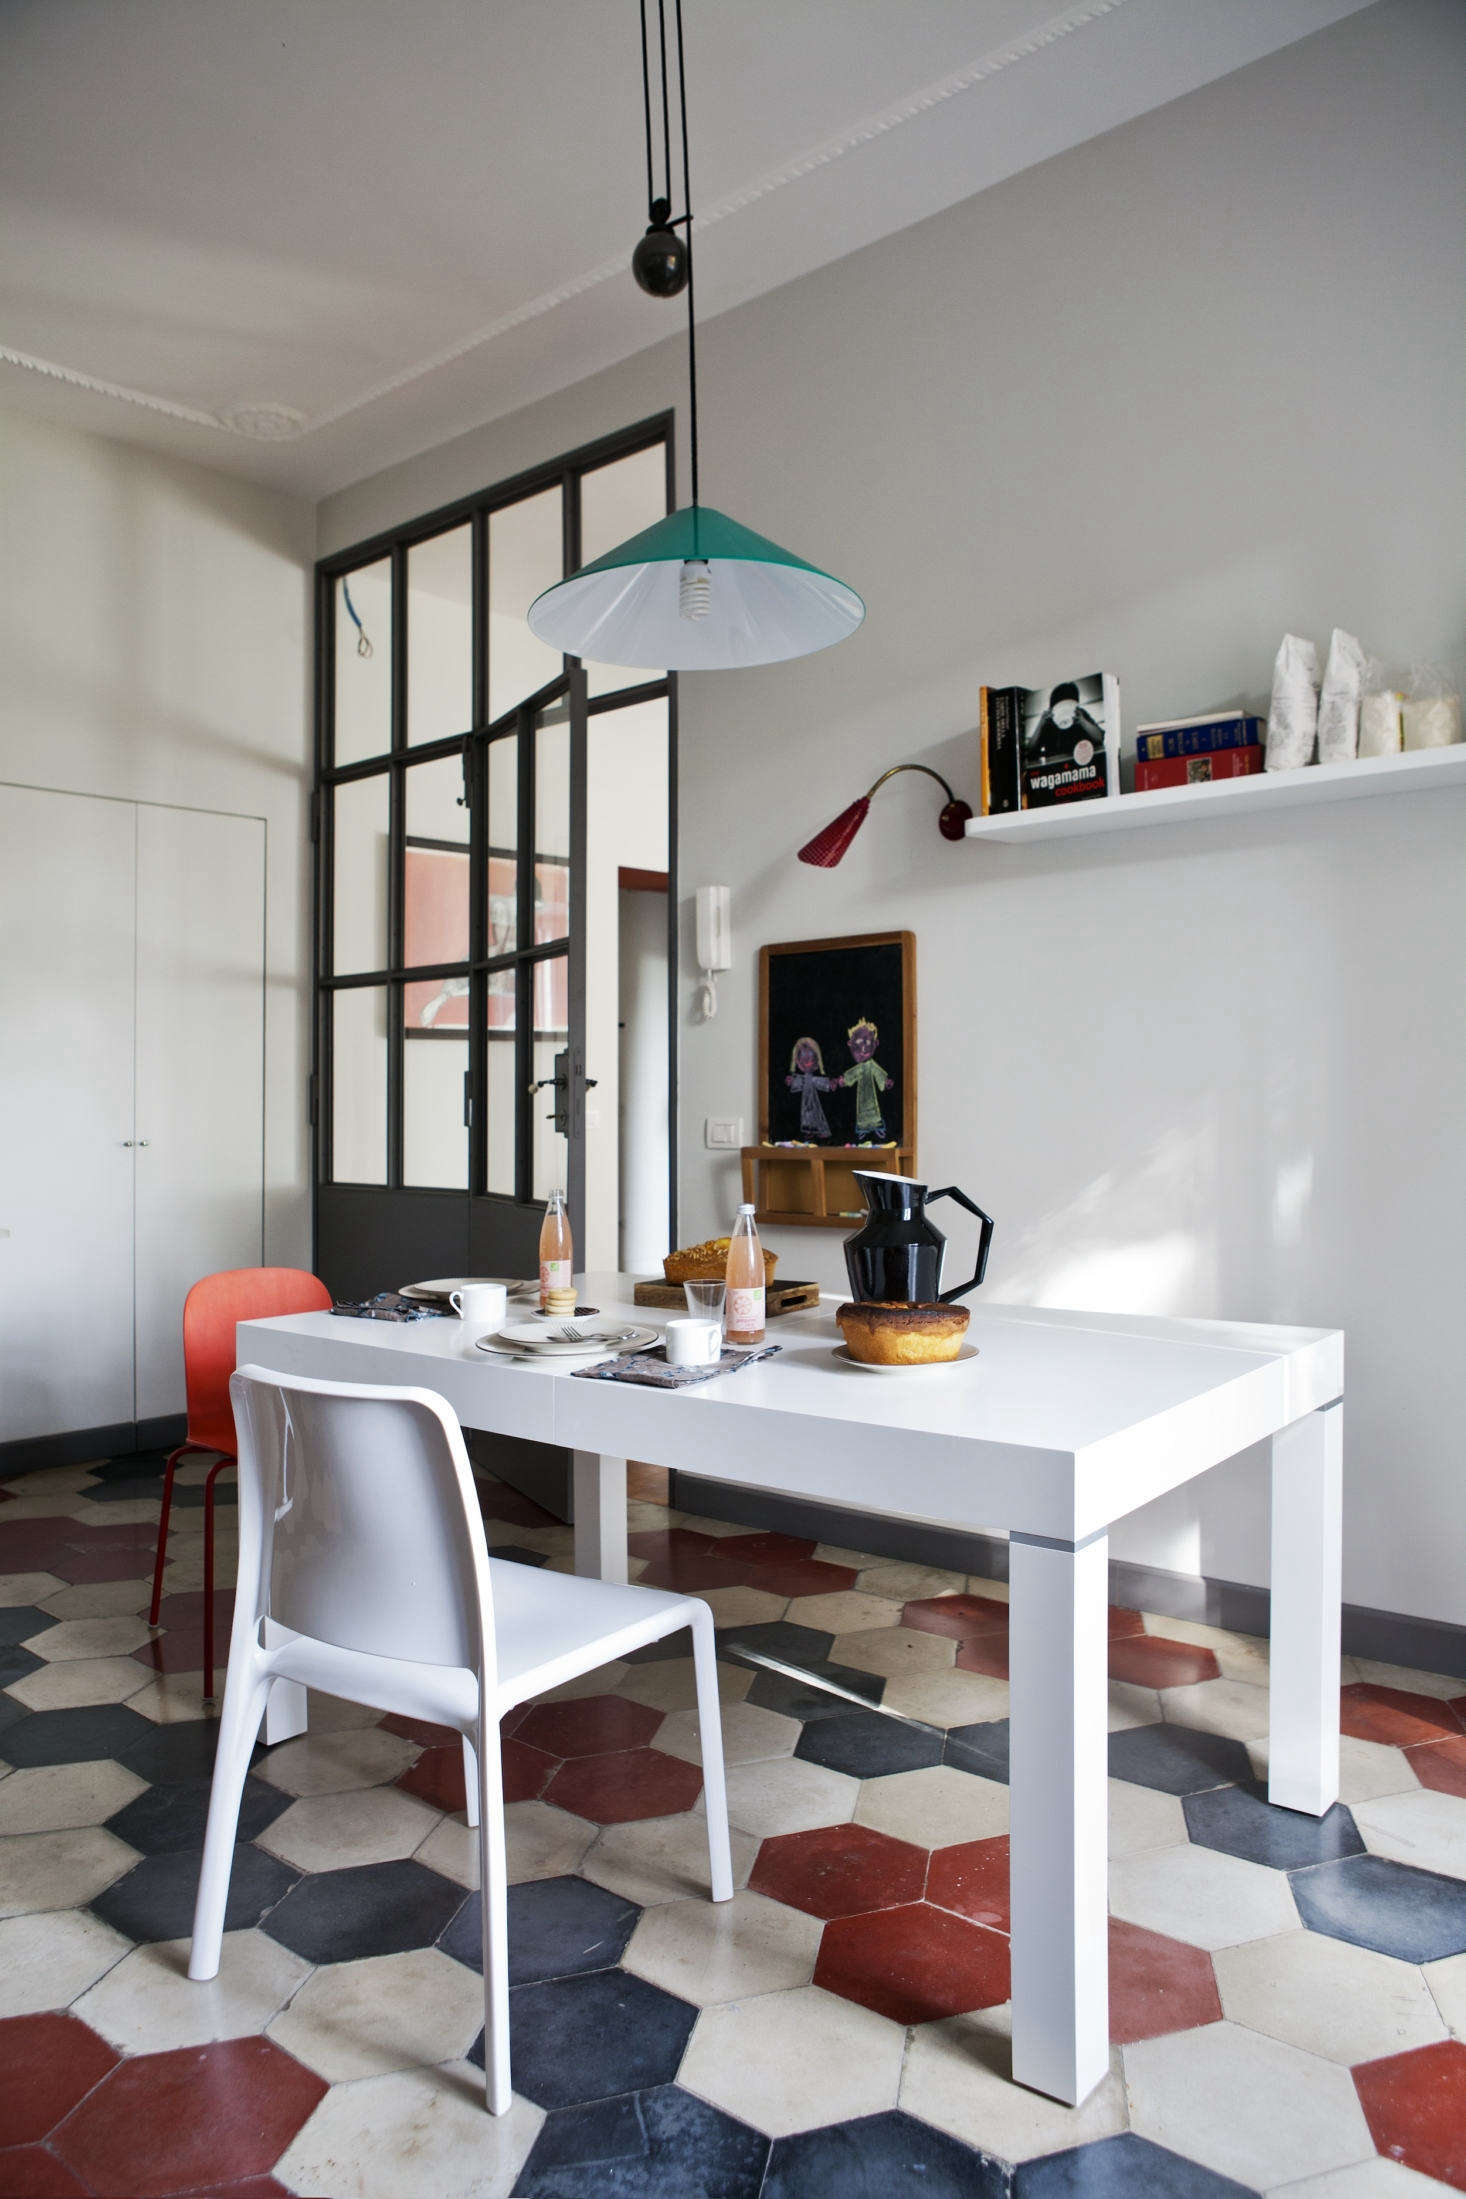 A bright turquoise pendant—theAggregato by Artemide—hangs above the breakfast table.